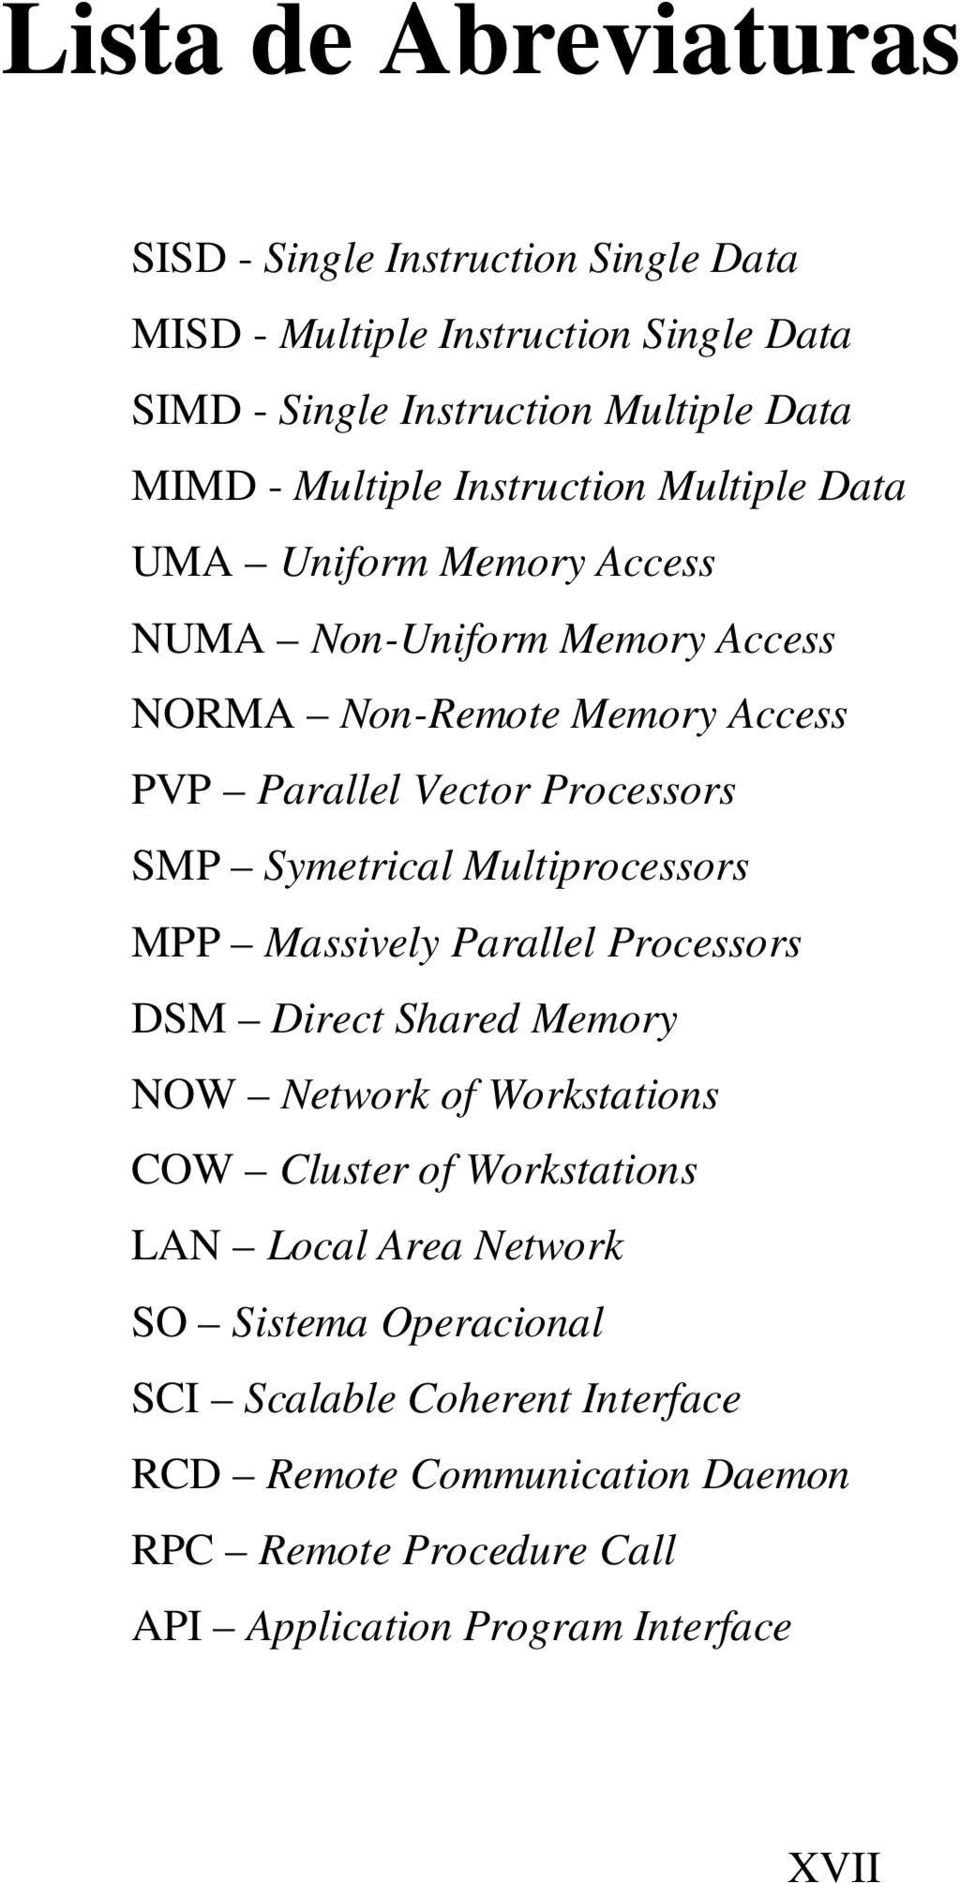 Symetrical Multiprocessors MPP Massively Parallel Processors DSM Direct Shared Memory NOW Network of Workstations COW Cluster of Workstations LAN Local